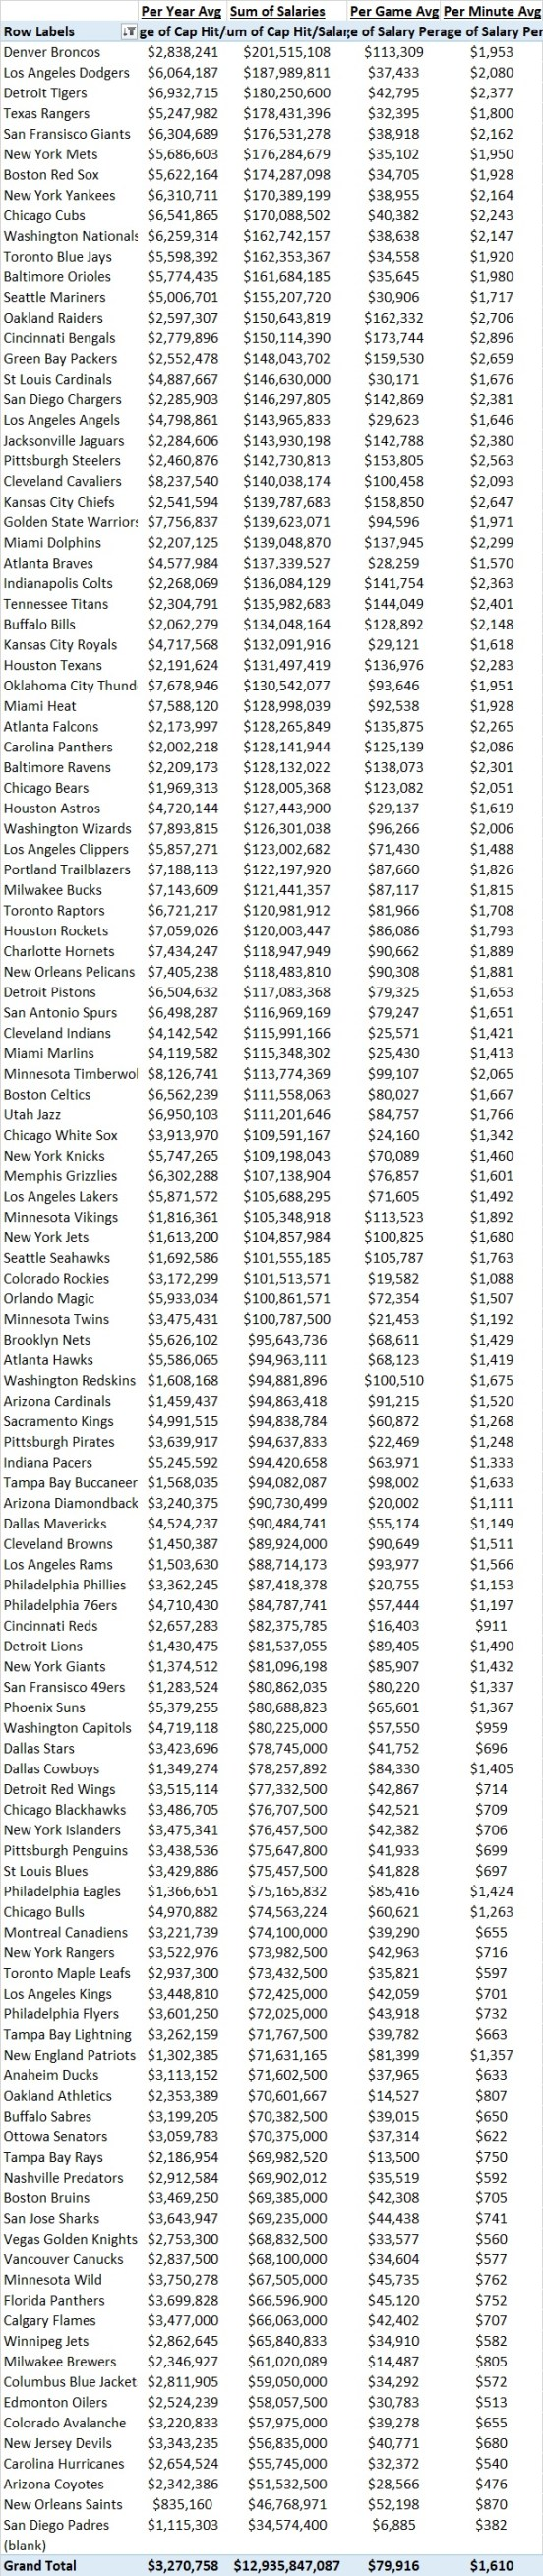 All Teams by Sum of Salaries